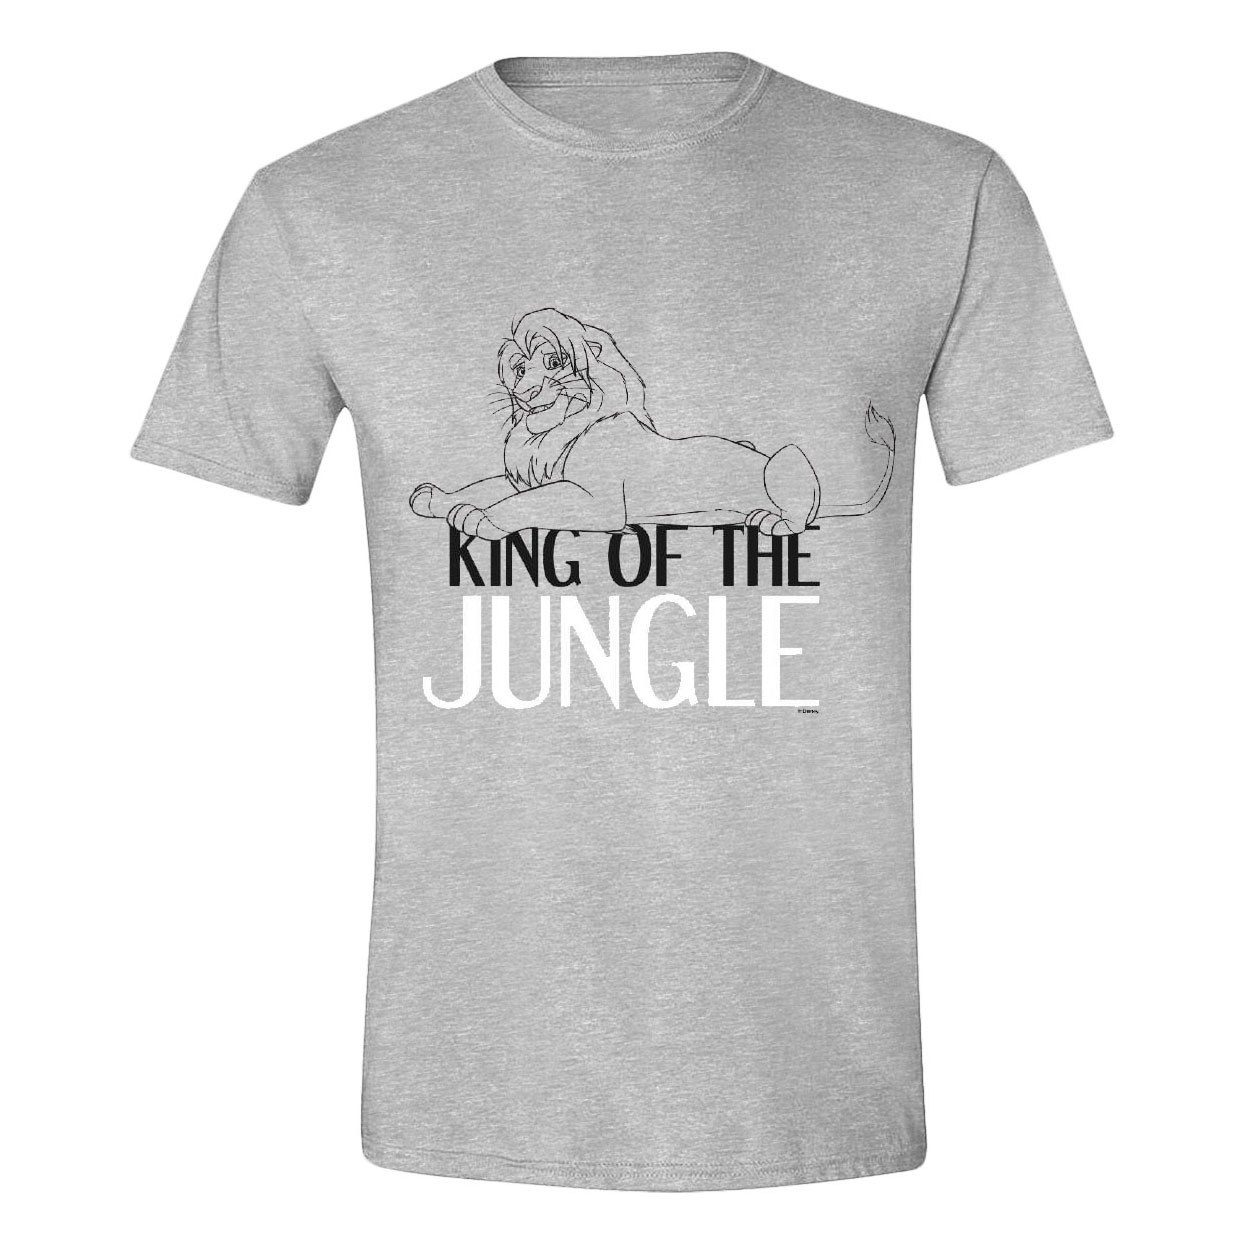 The Lion King T-Shirt King of the Jungle Size XL